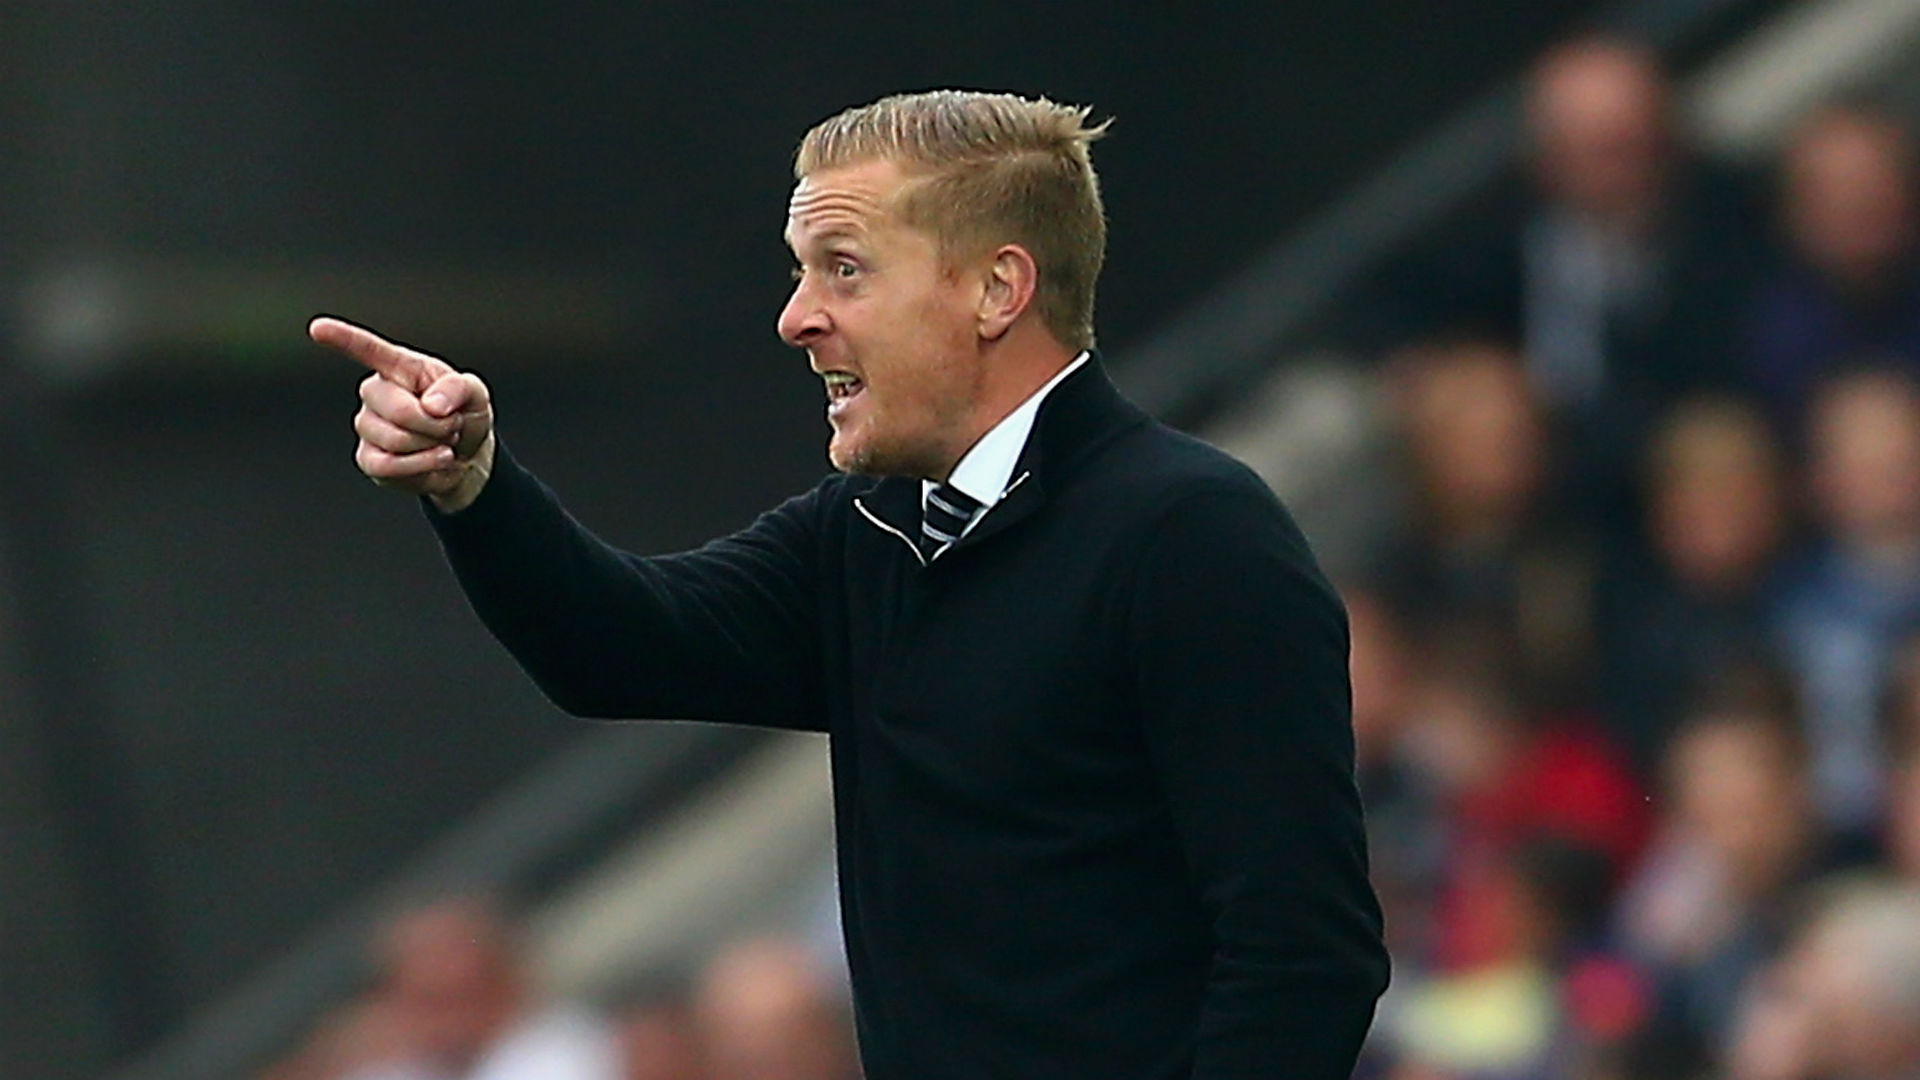 Middlesbrough Appoint Gary Monk As New Manager